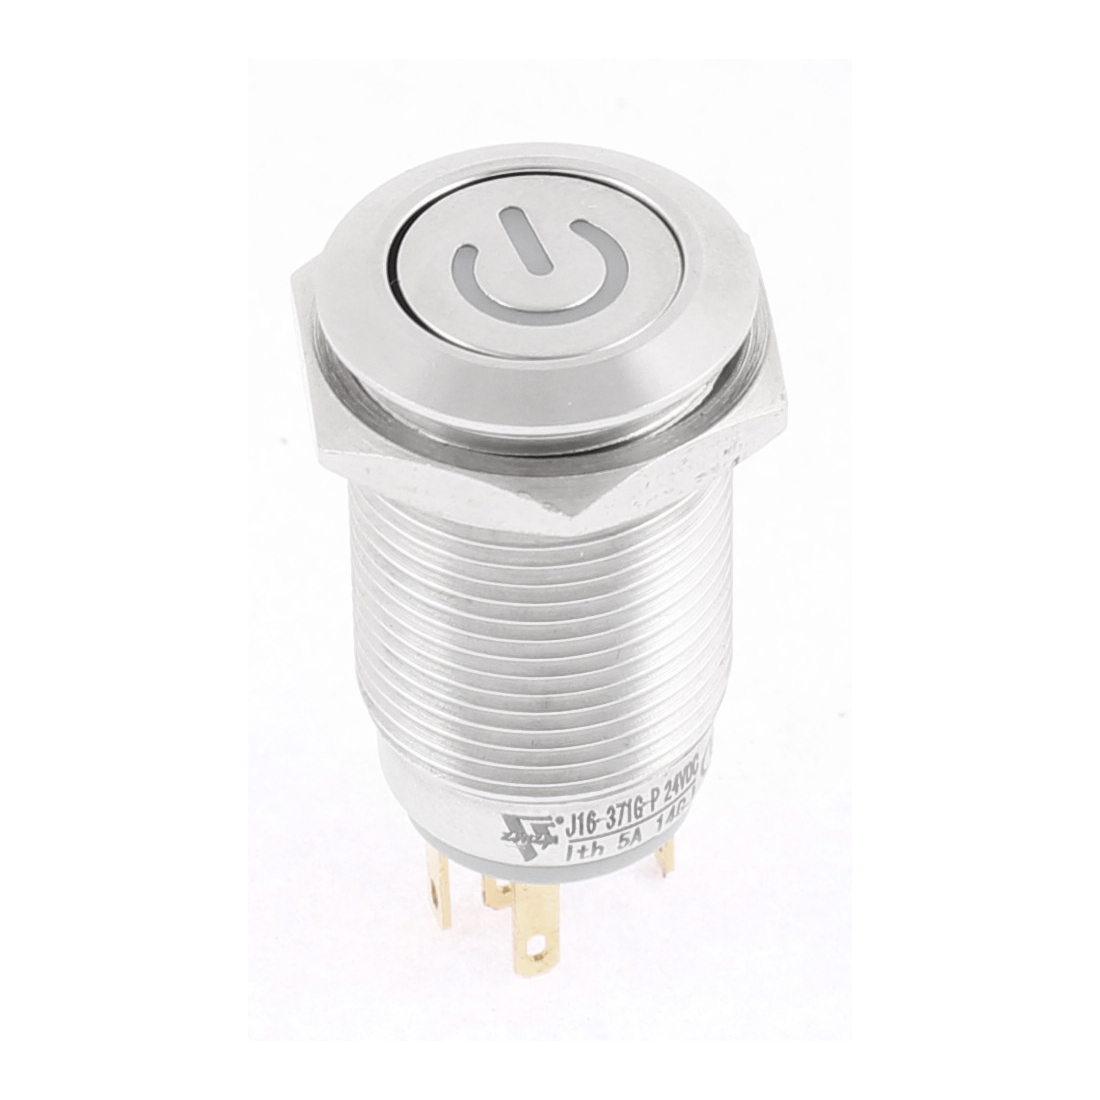 16mm DC 24V Car Angel Eye Green Led Lighted Metal Self-locking Switch Latching 1NO1NC SPDT ON/OFF Push Button Switch Silver Tone